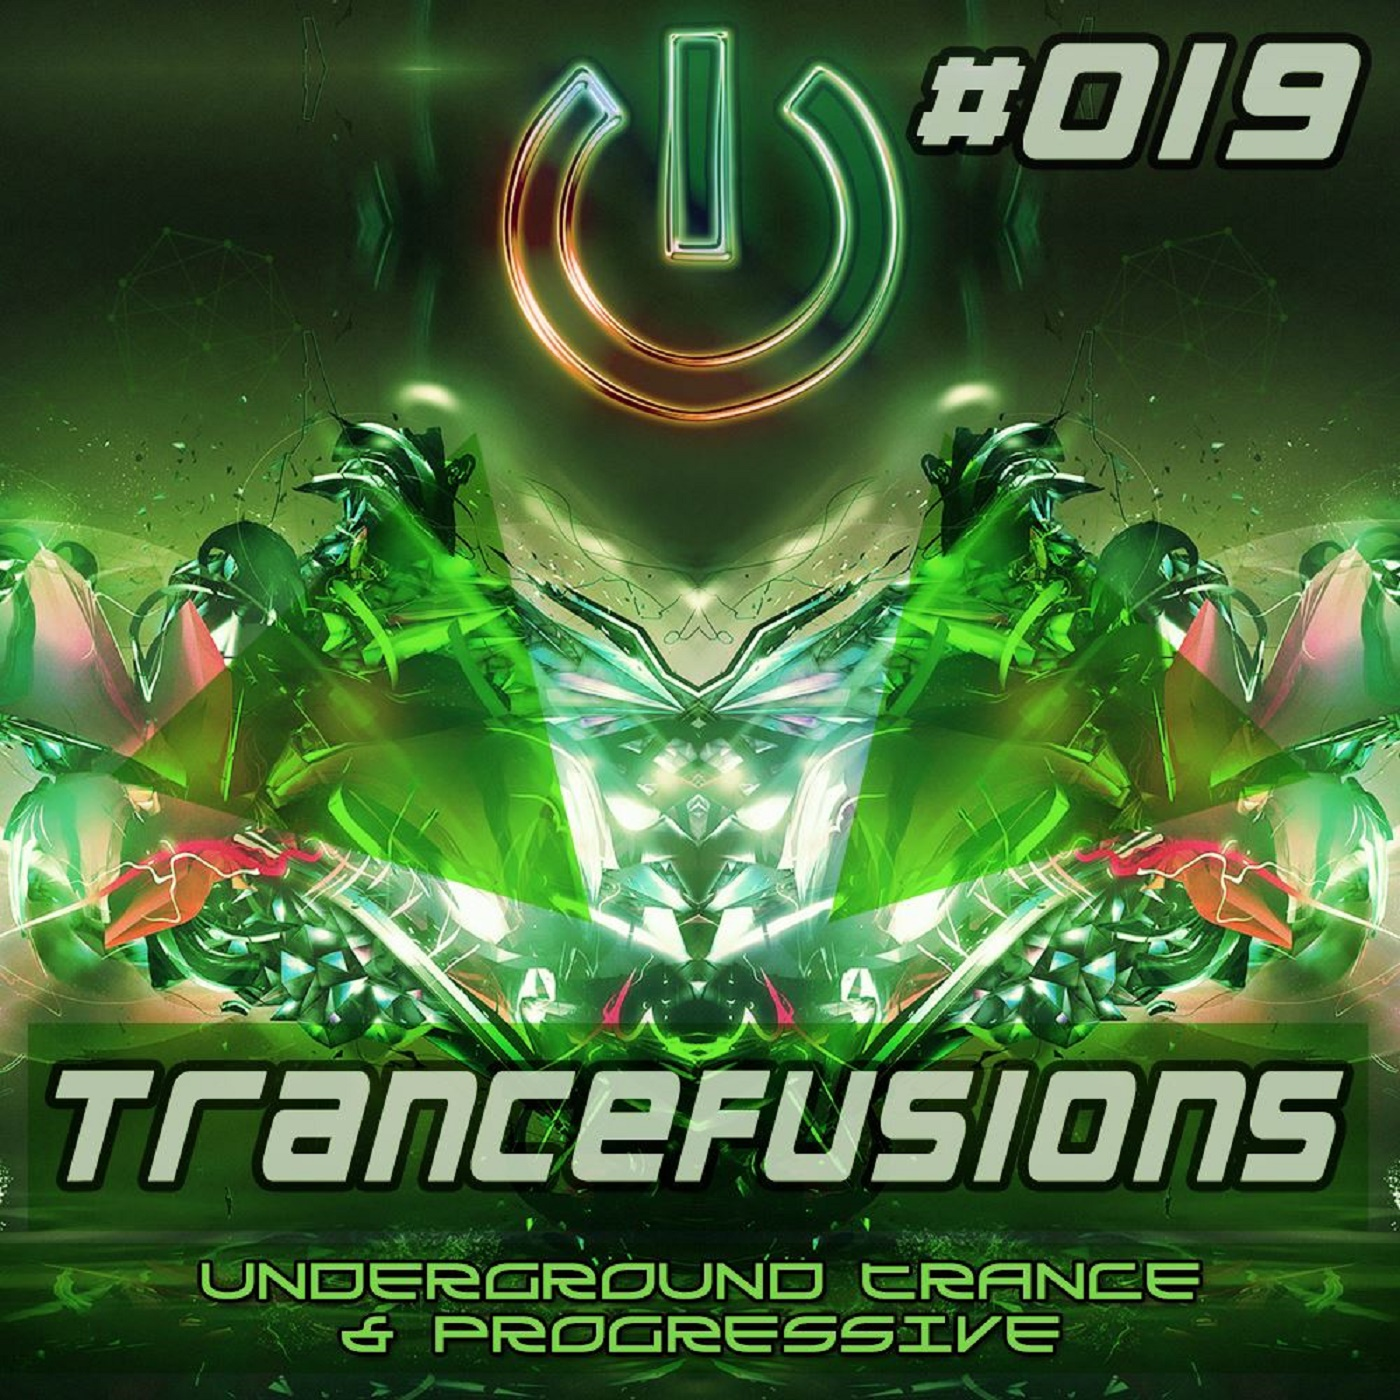 Vernski Presents Trancefusions